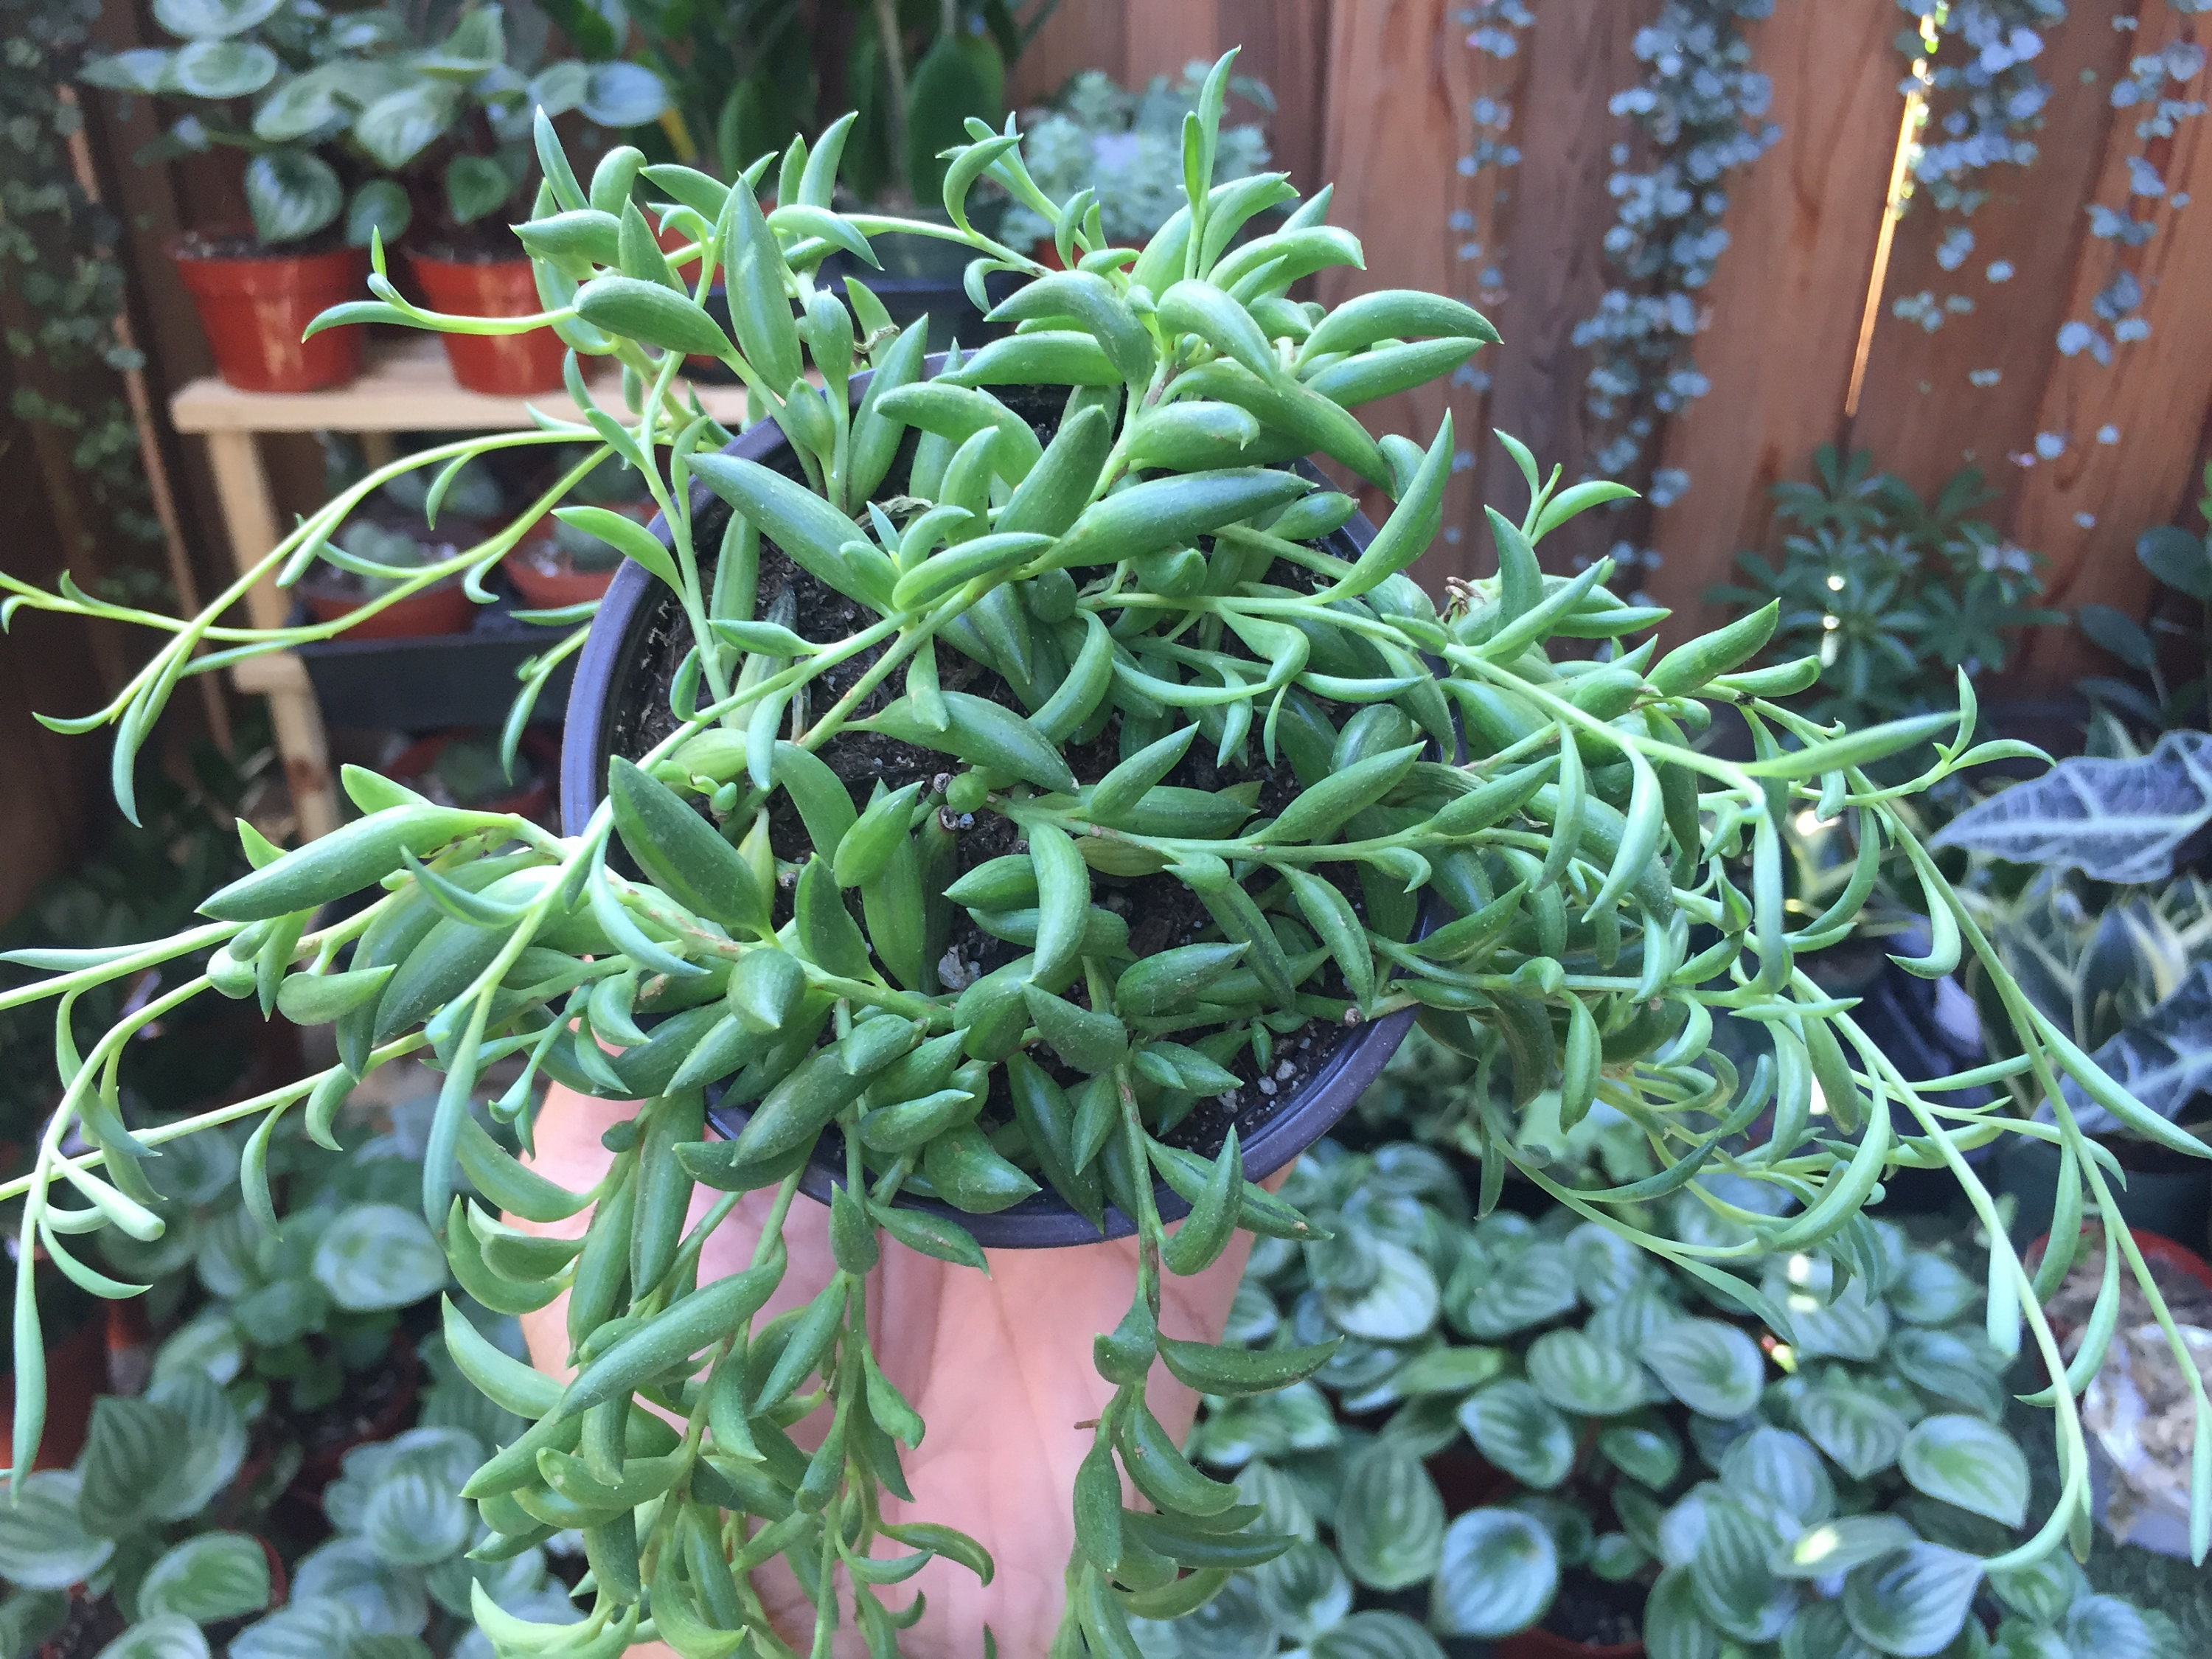 String of banana plant care - Description Senecio Radicans Plant String Of Bananas